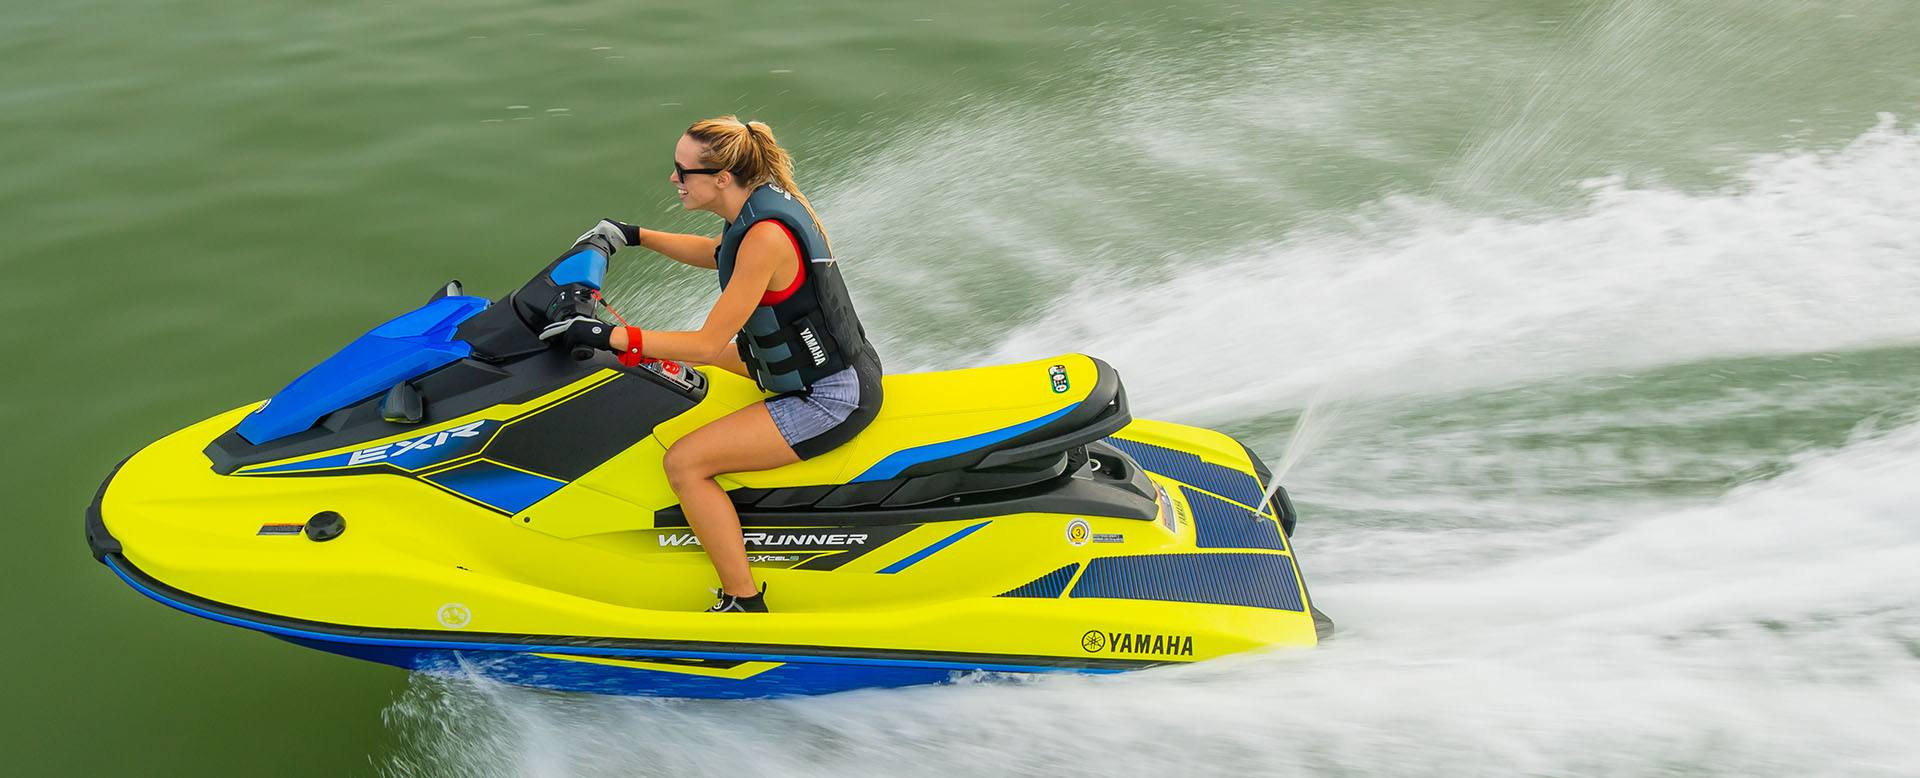 EXR Lightweight Watercraft